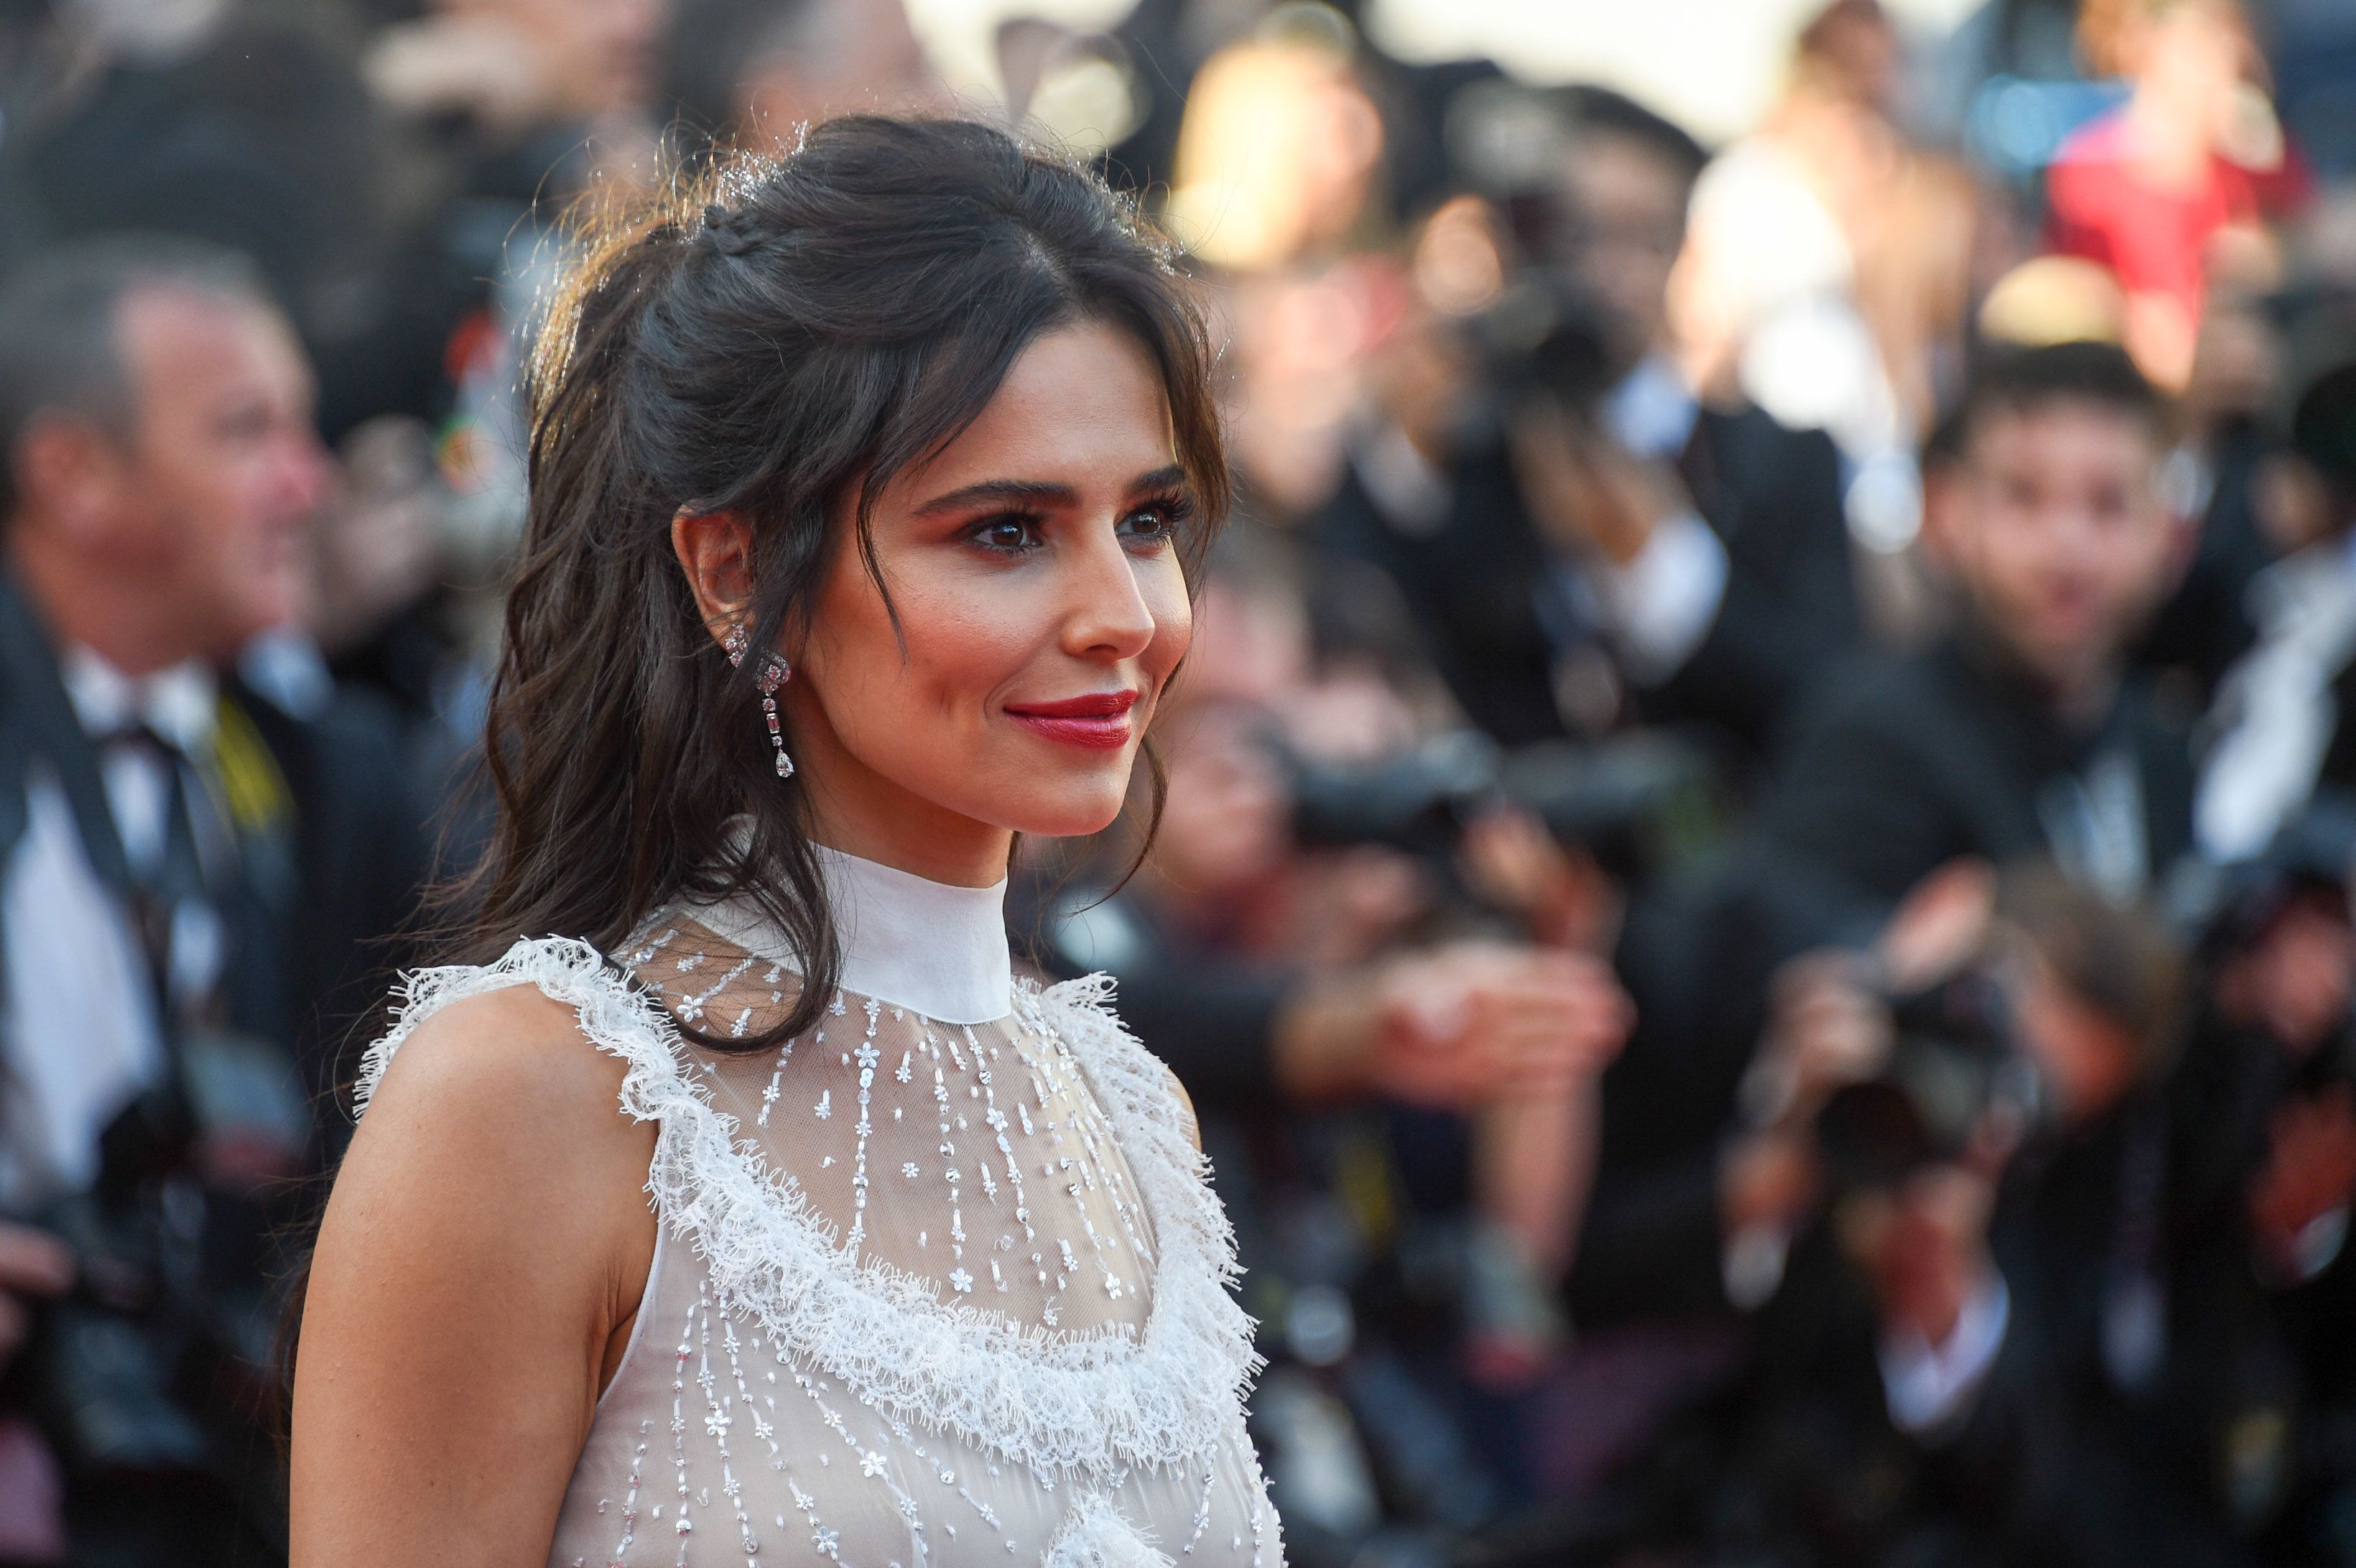 Cheryl Hits The Red Carpet At Cannes After Touching Down On A Private